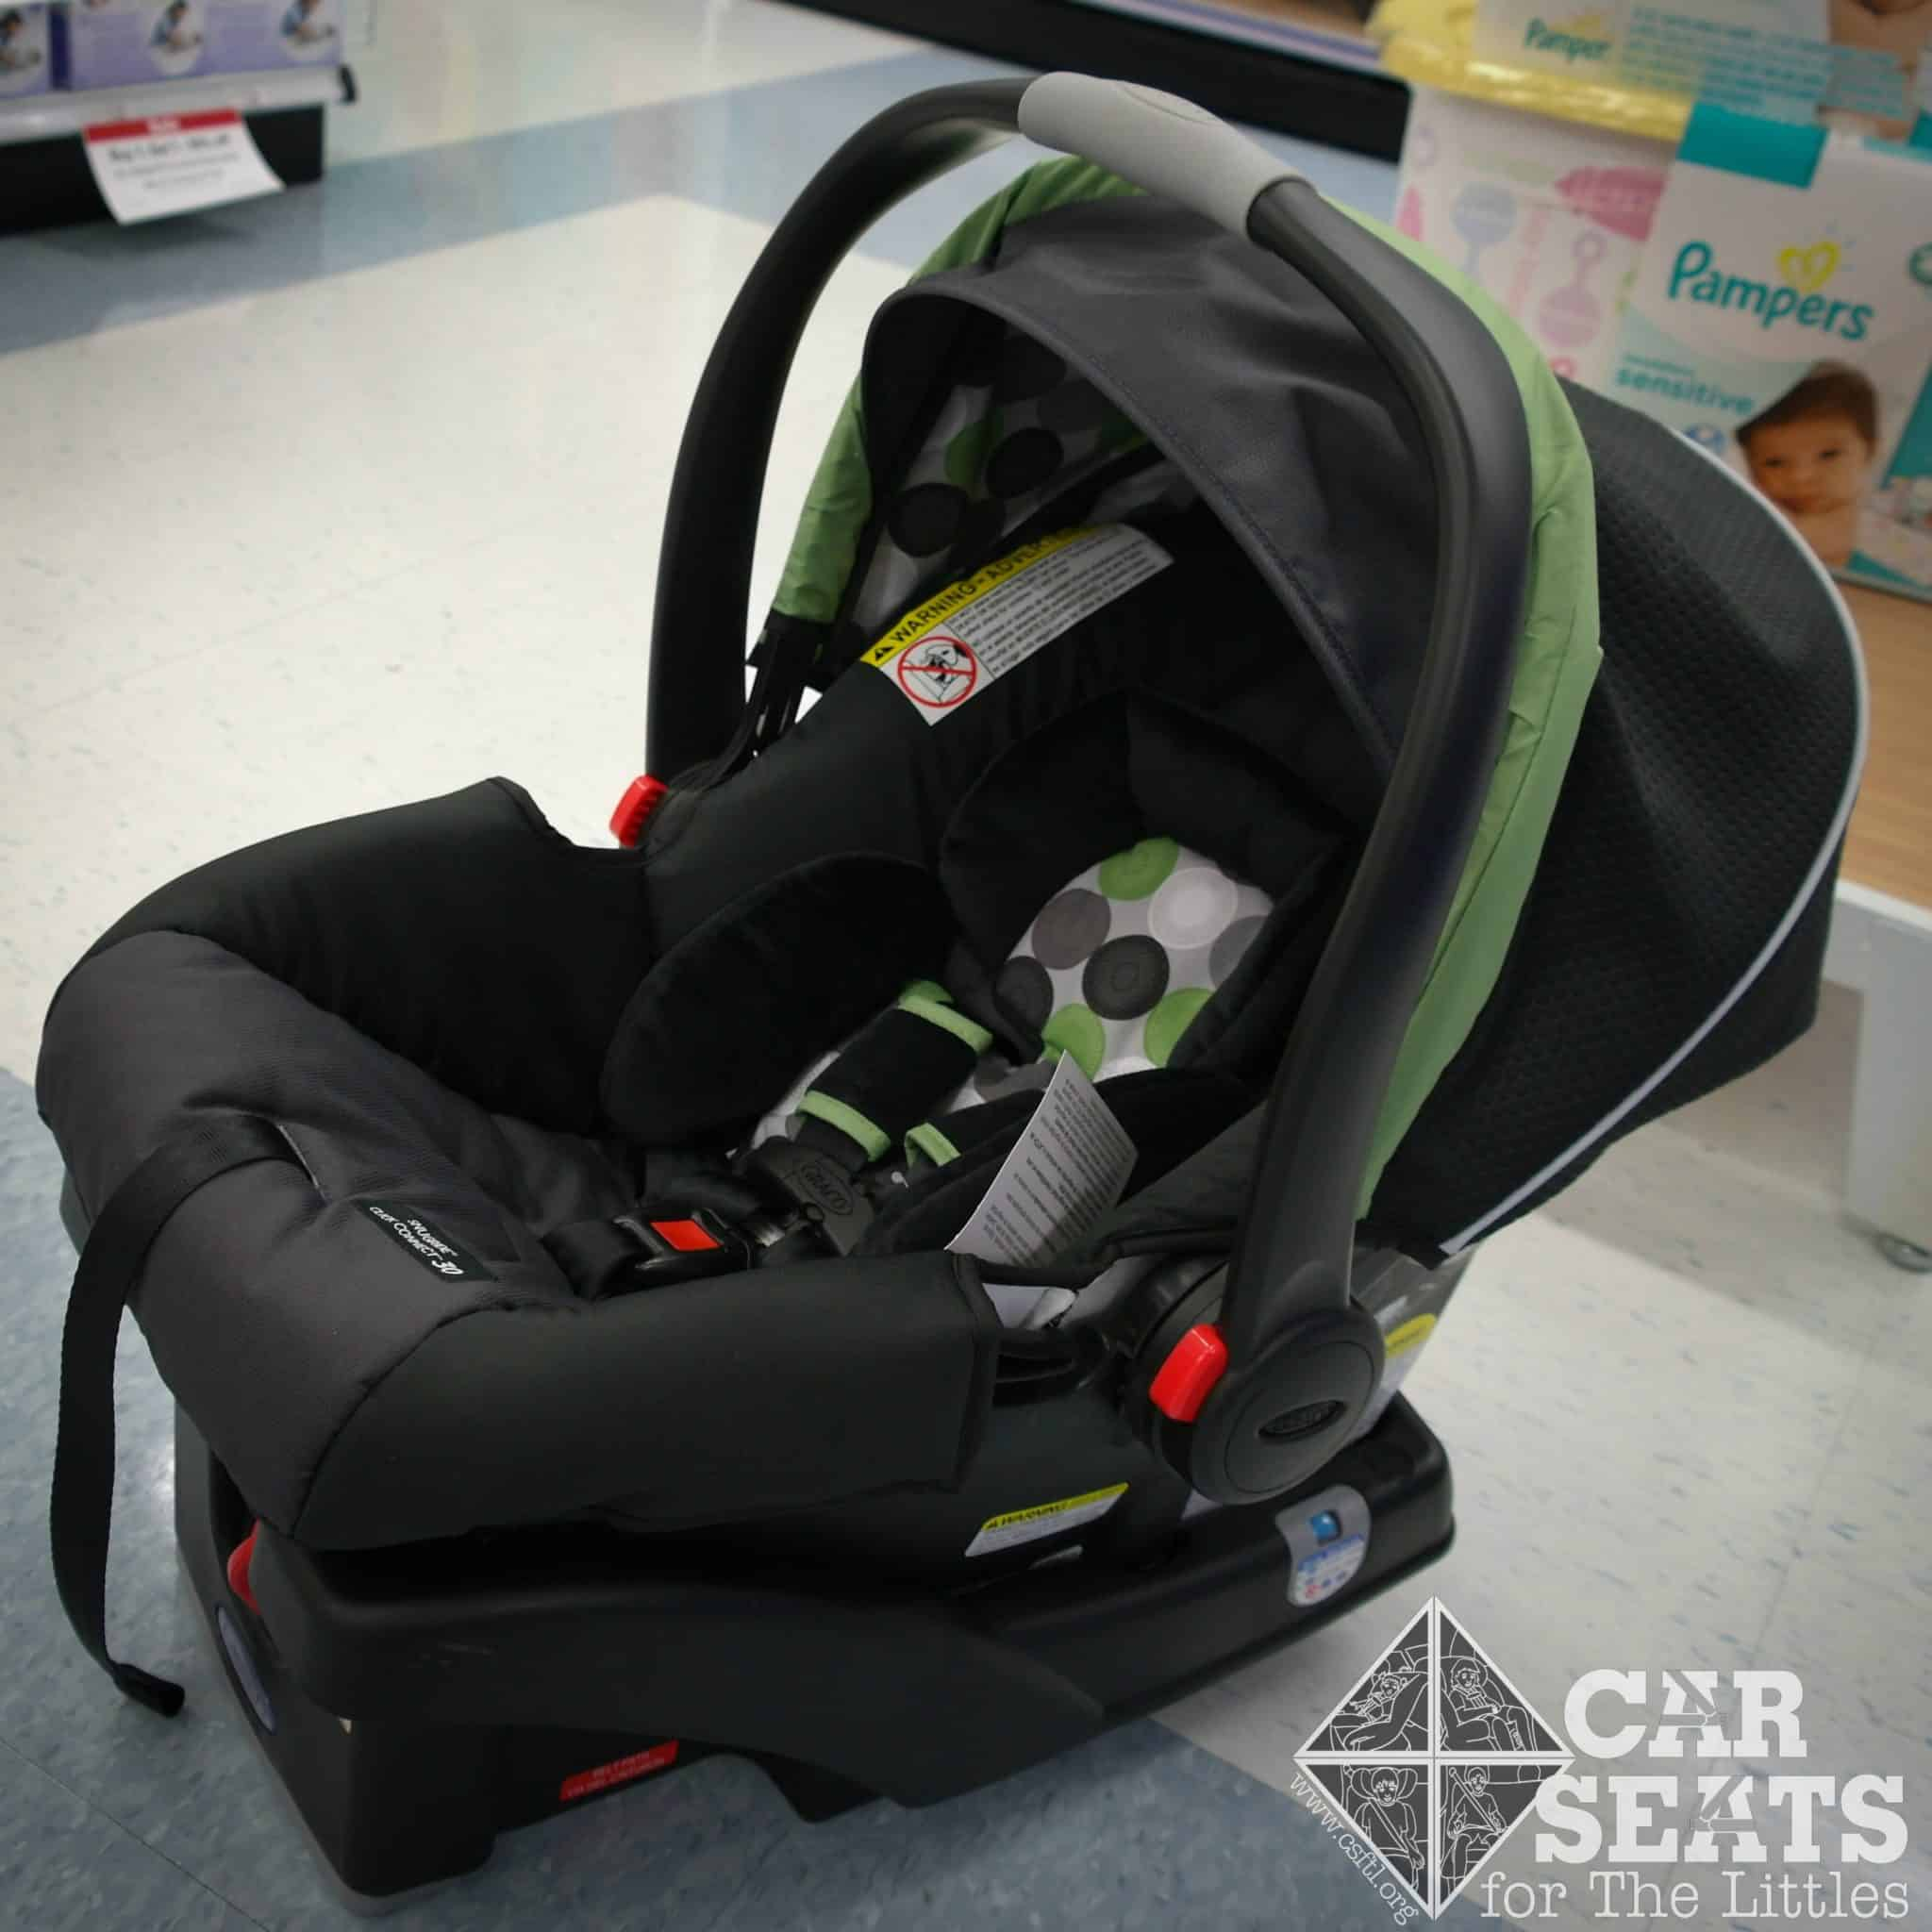 Infant Carrier Handle Position Car Graco Rear Facing Only Car Seats What 39;s The Difference